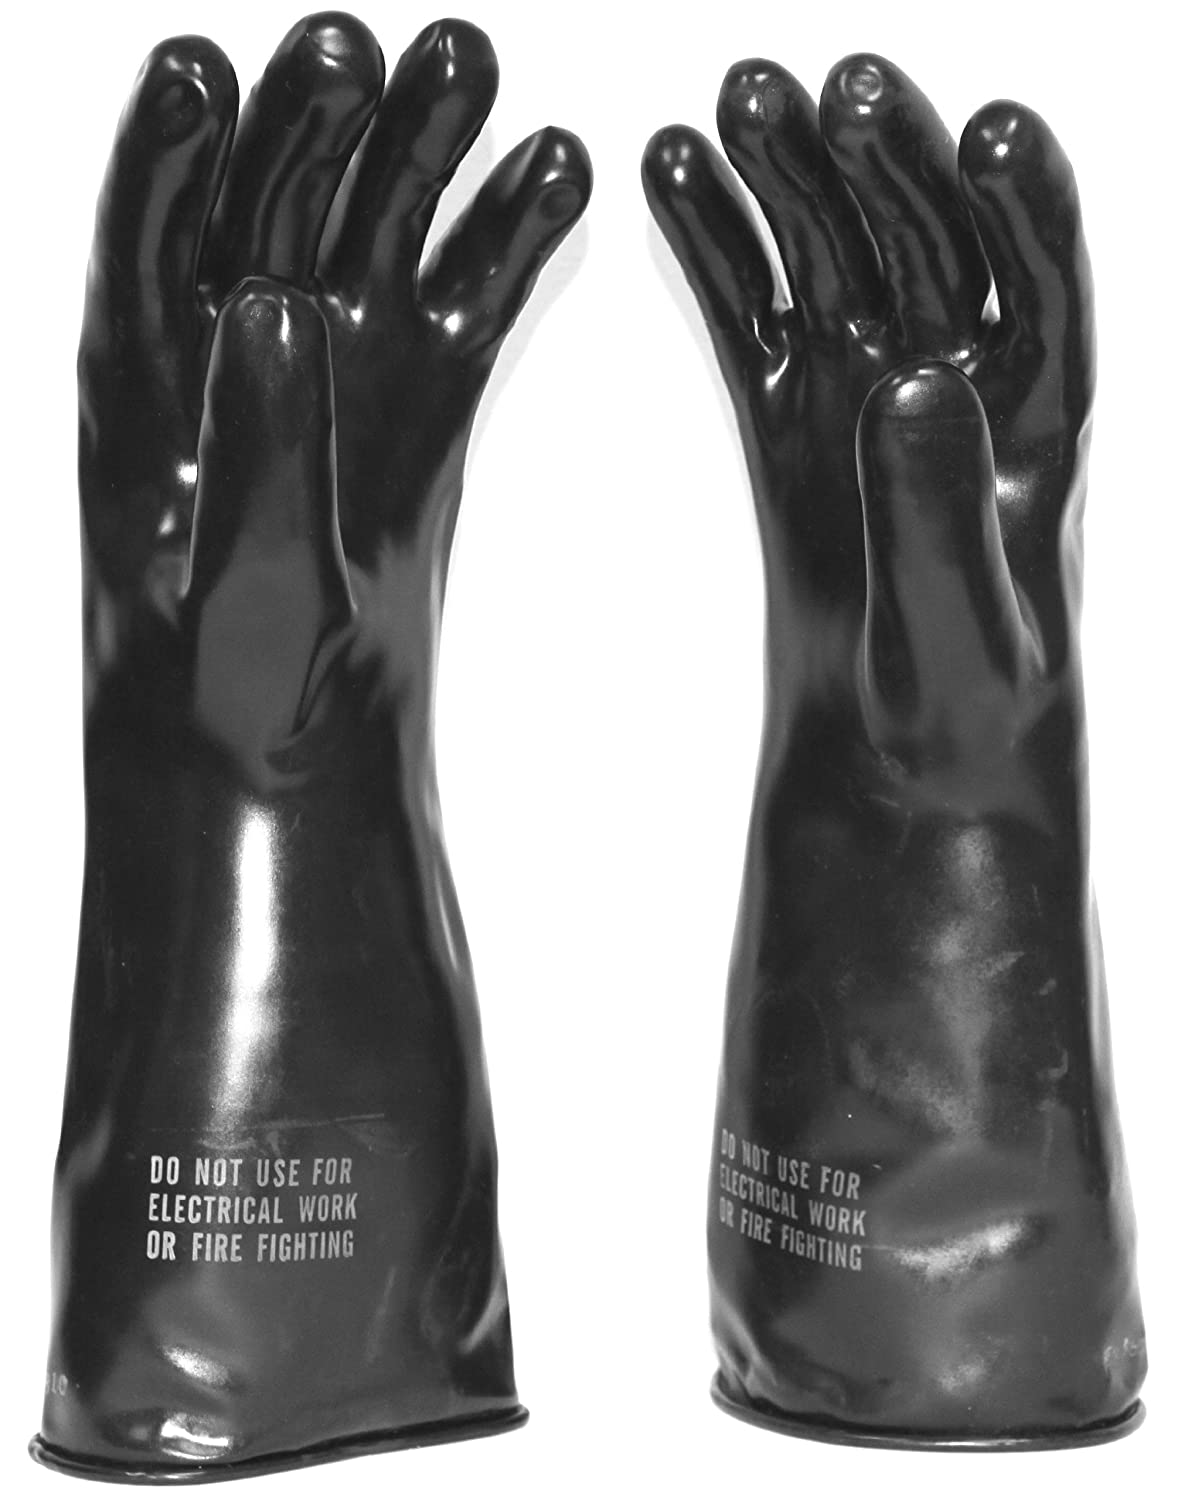 Butyl Rubber Gloves (Chemical Reisistant) 12 Per Box (Small)